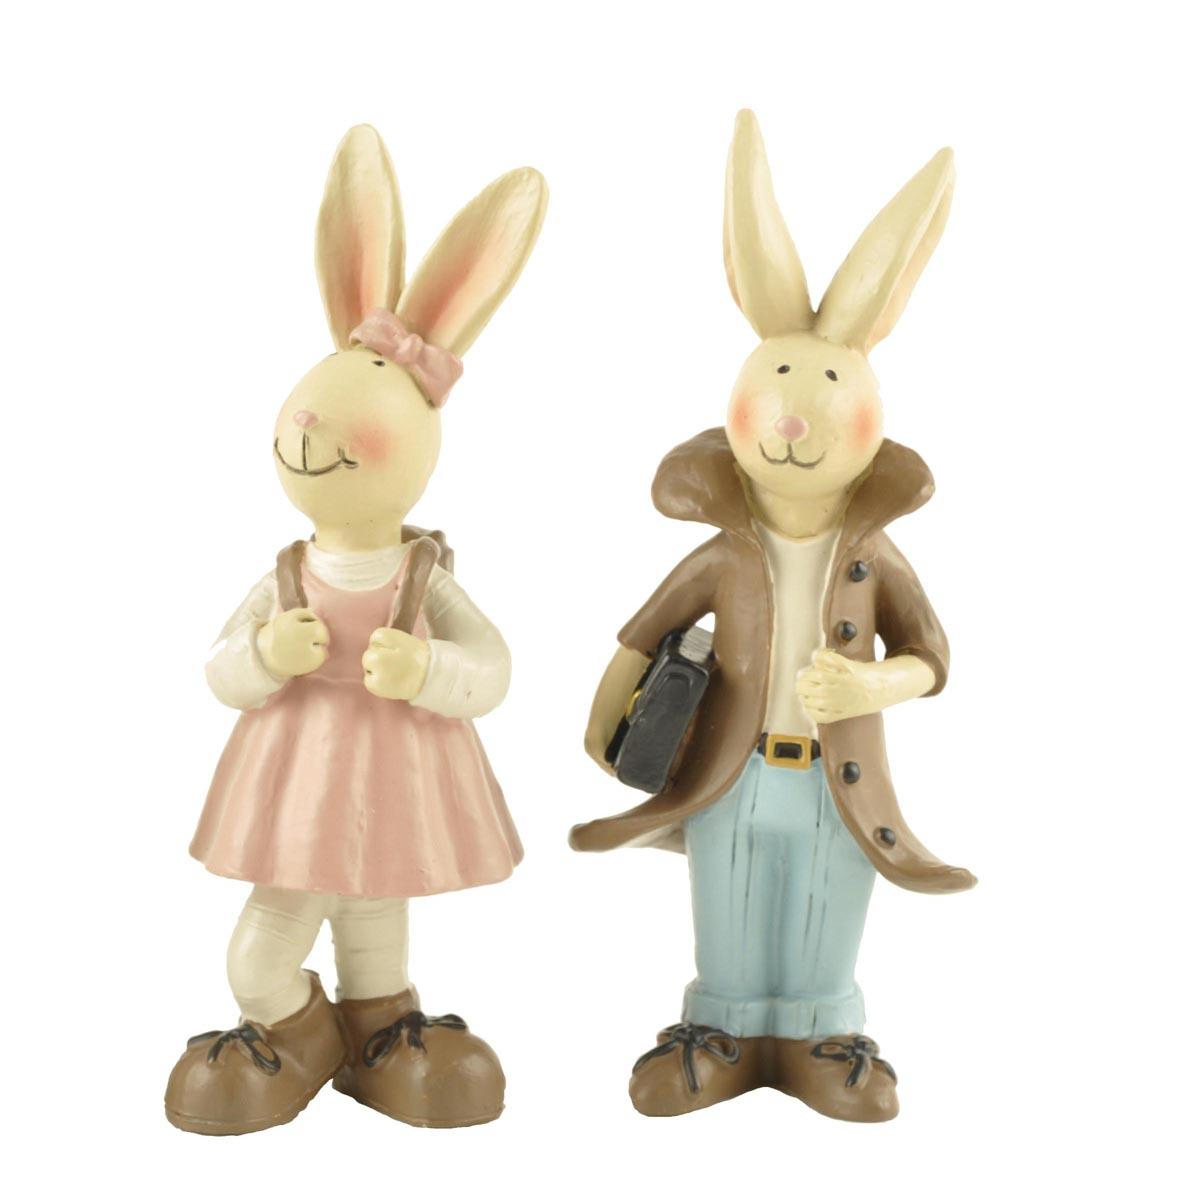 Handmade Polyresin Unique Easter Table Decoration Boy and Girl Rabbit Statue